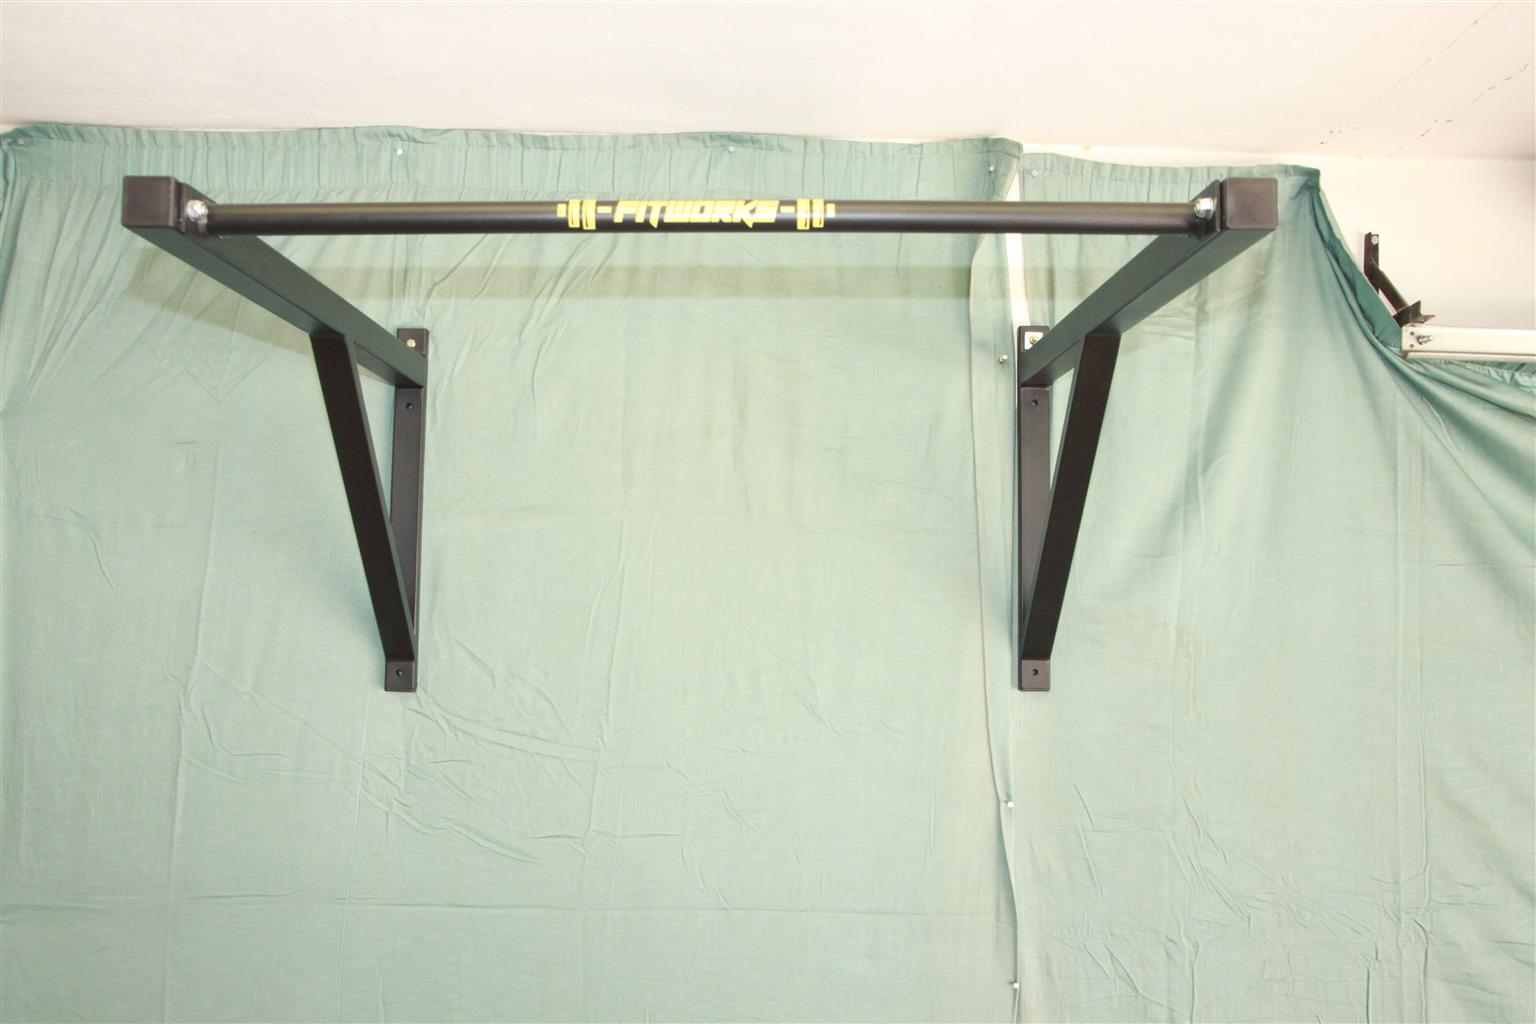 Gym equipment - PULL UP BAR